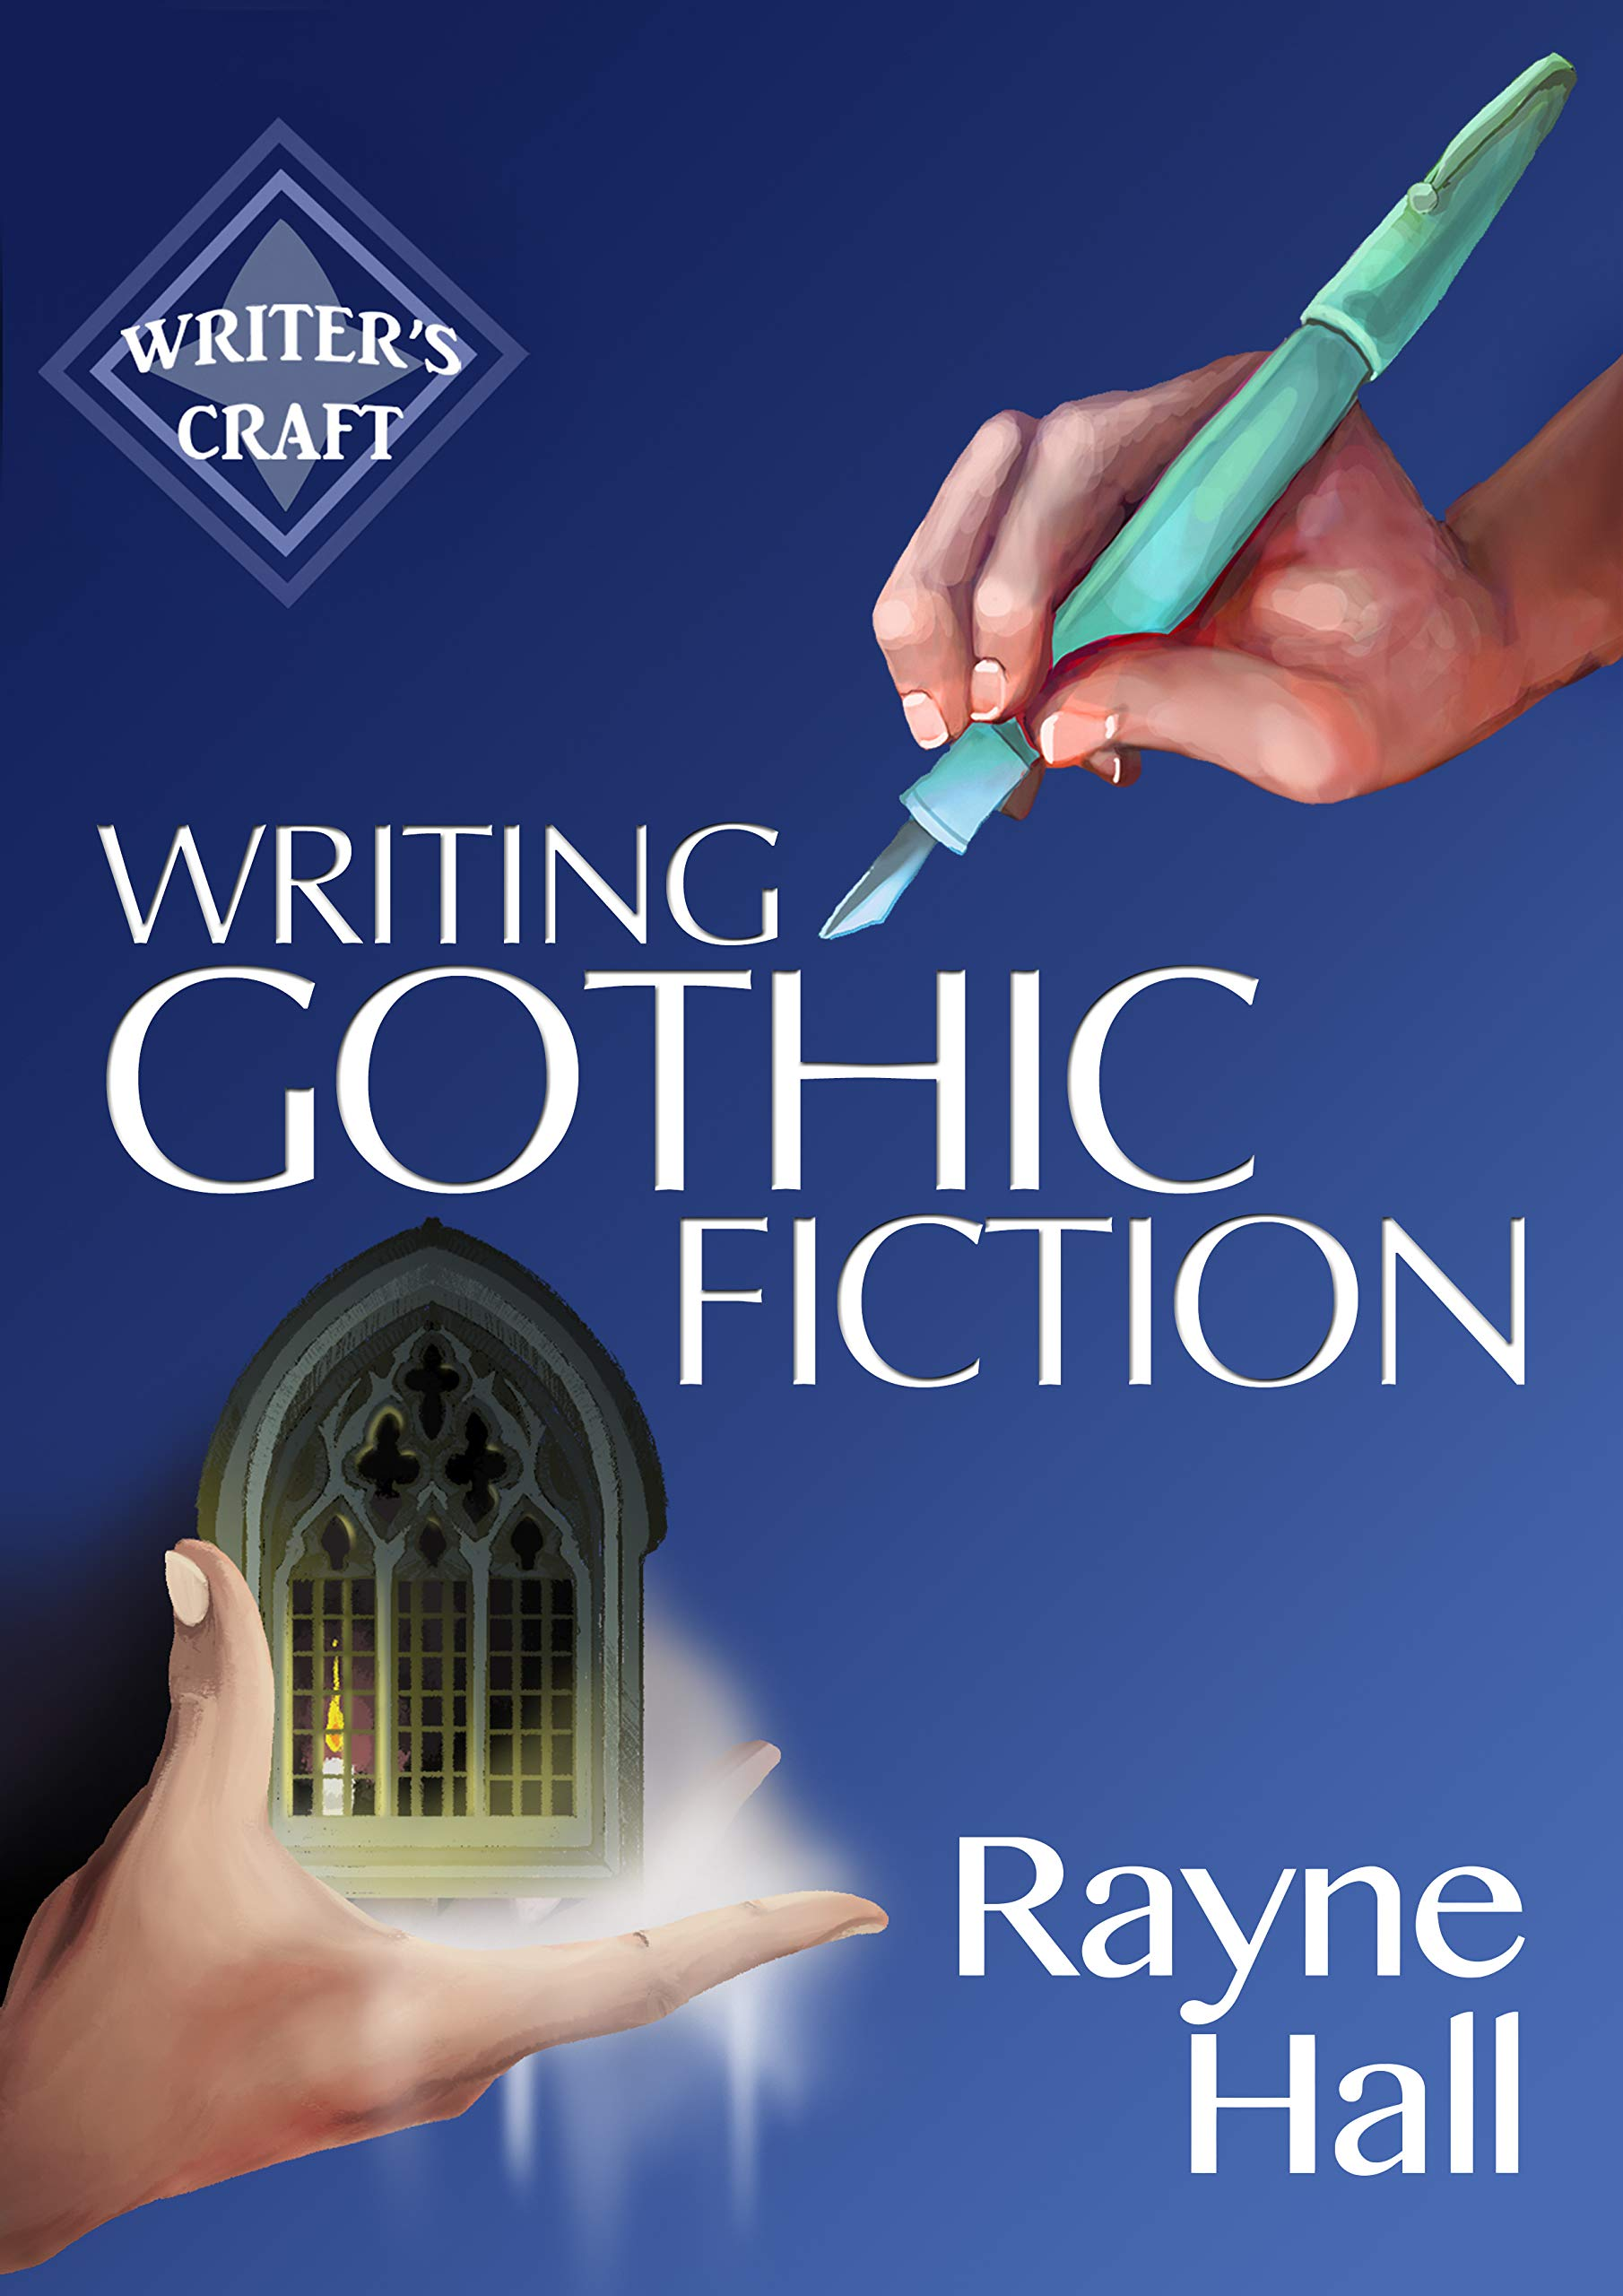 Writing Gothic Fiction  Learn To Thrill Readers With Passion And Suspense  Writer's Craft Book 32   English Edition